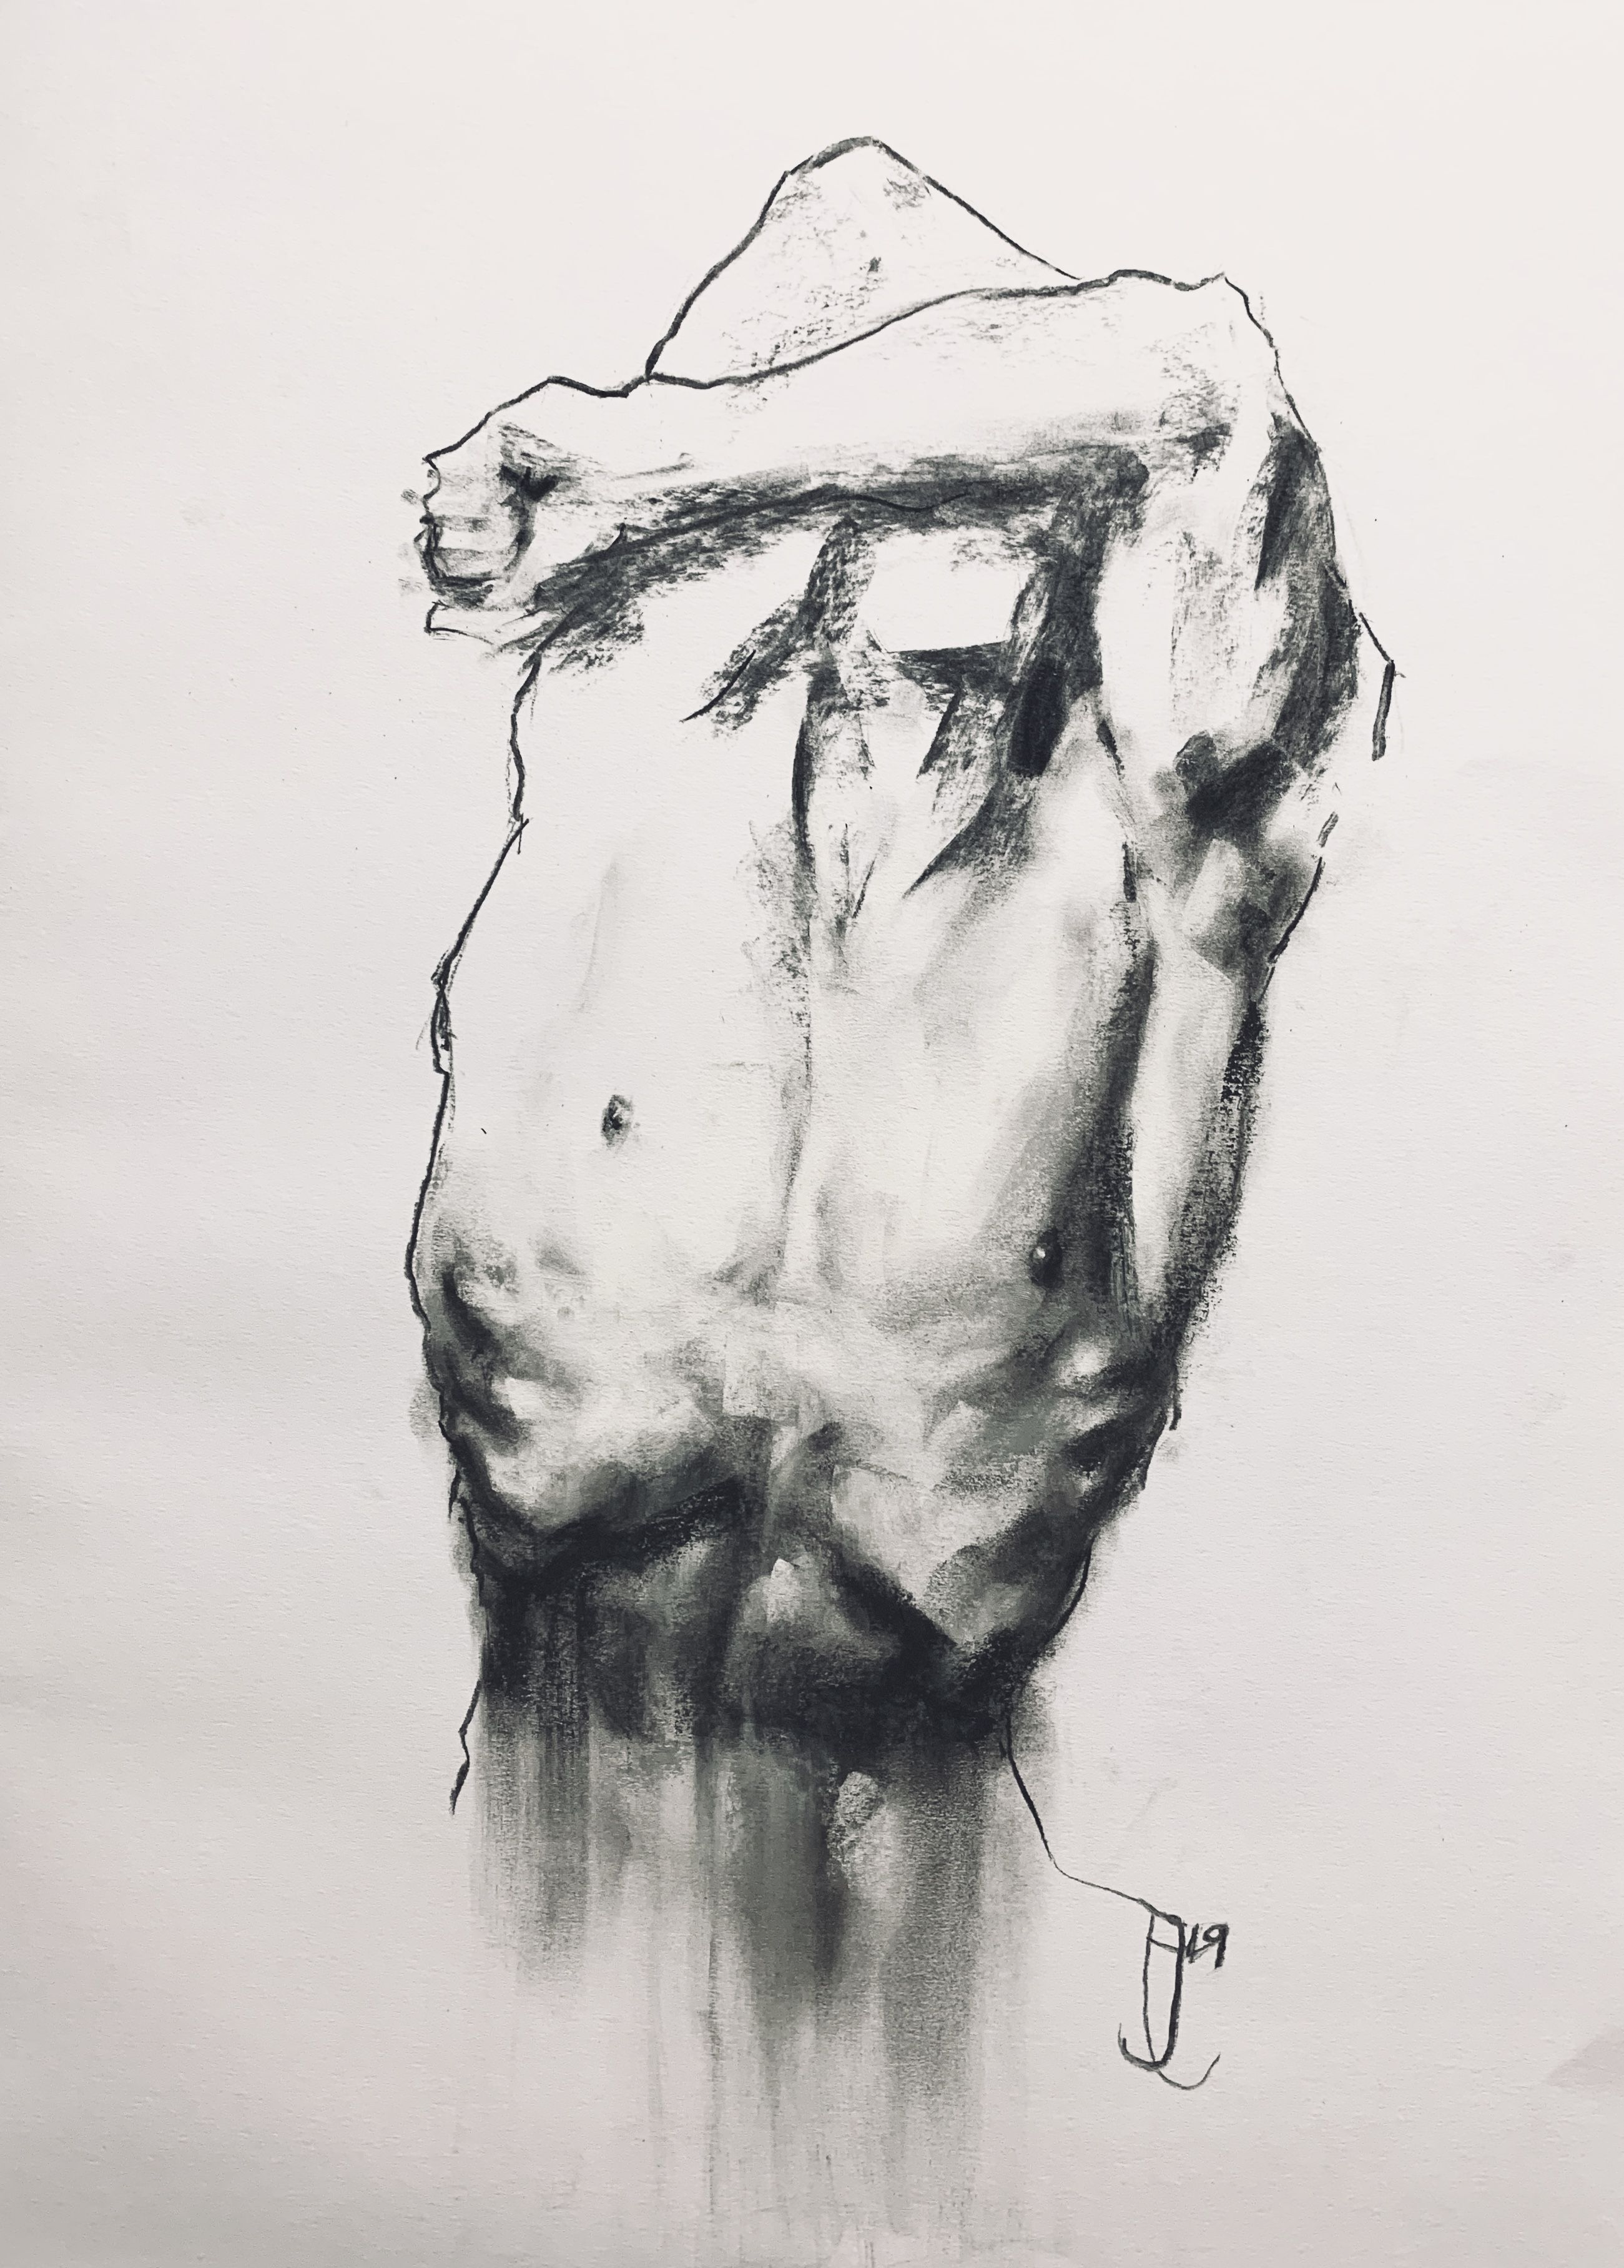 The third in a series of gesture drawings focusing on the male form, done in charcoal and pastel. I use the pastel to add detail to certain areas, and the charcoal to outline keep other areas minimal.  Pastel: @sennelier1887  Paper: @fabriano1264   www.jordaneastwood.co.uk  #malefigure #figuredrawing #figurativeart #expressiveart #gesturalart #gesturedrawing #darkart #masculinity #strong #britishartist #devonartist #devon #kraftig #outlinedrawing